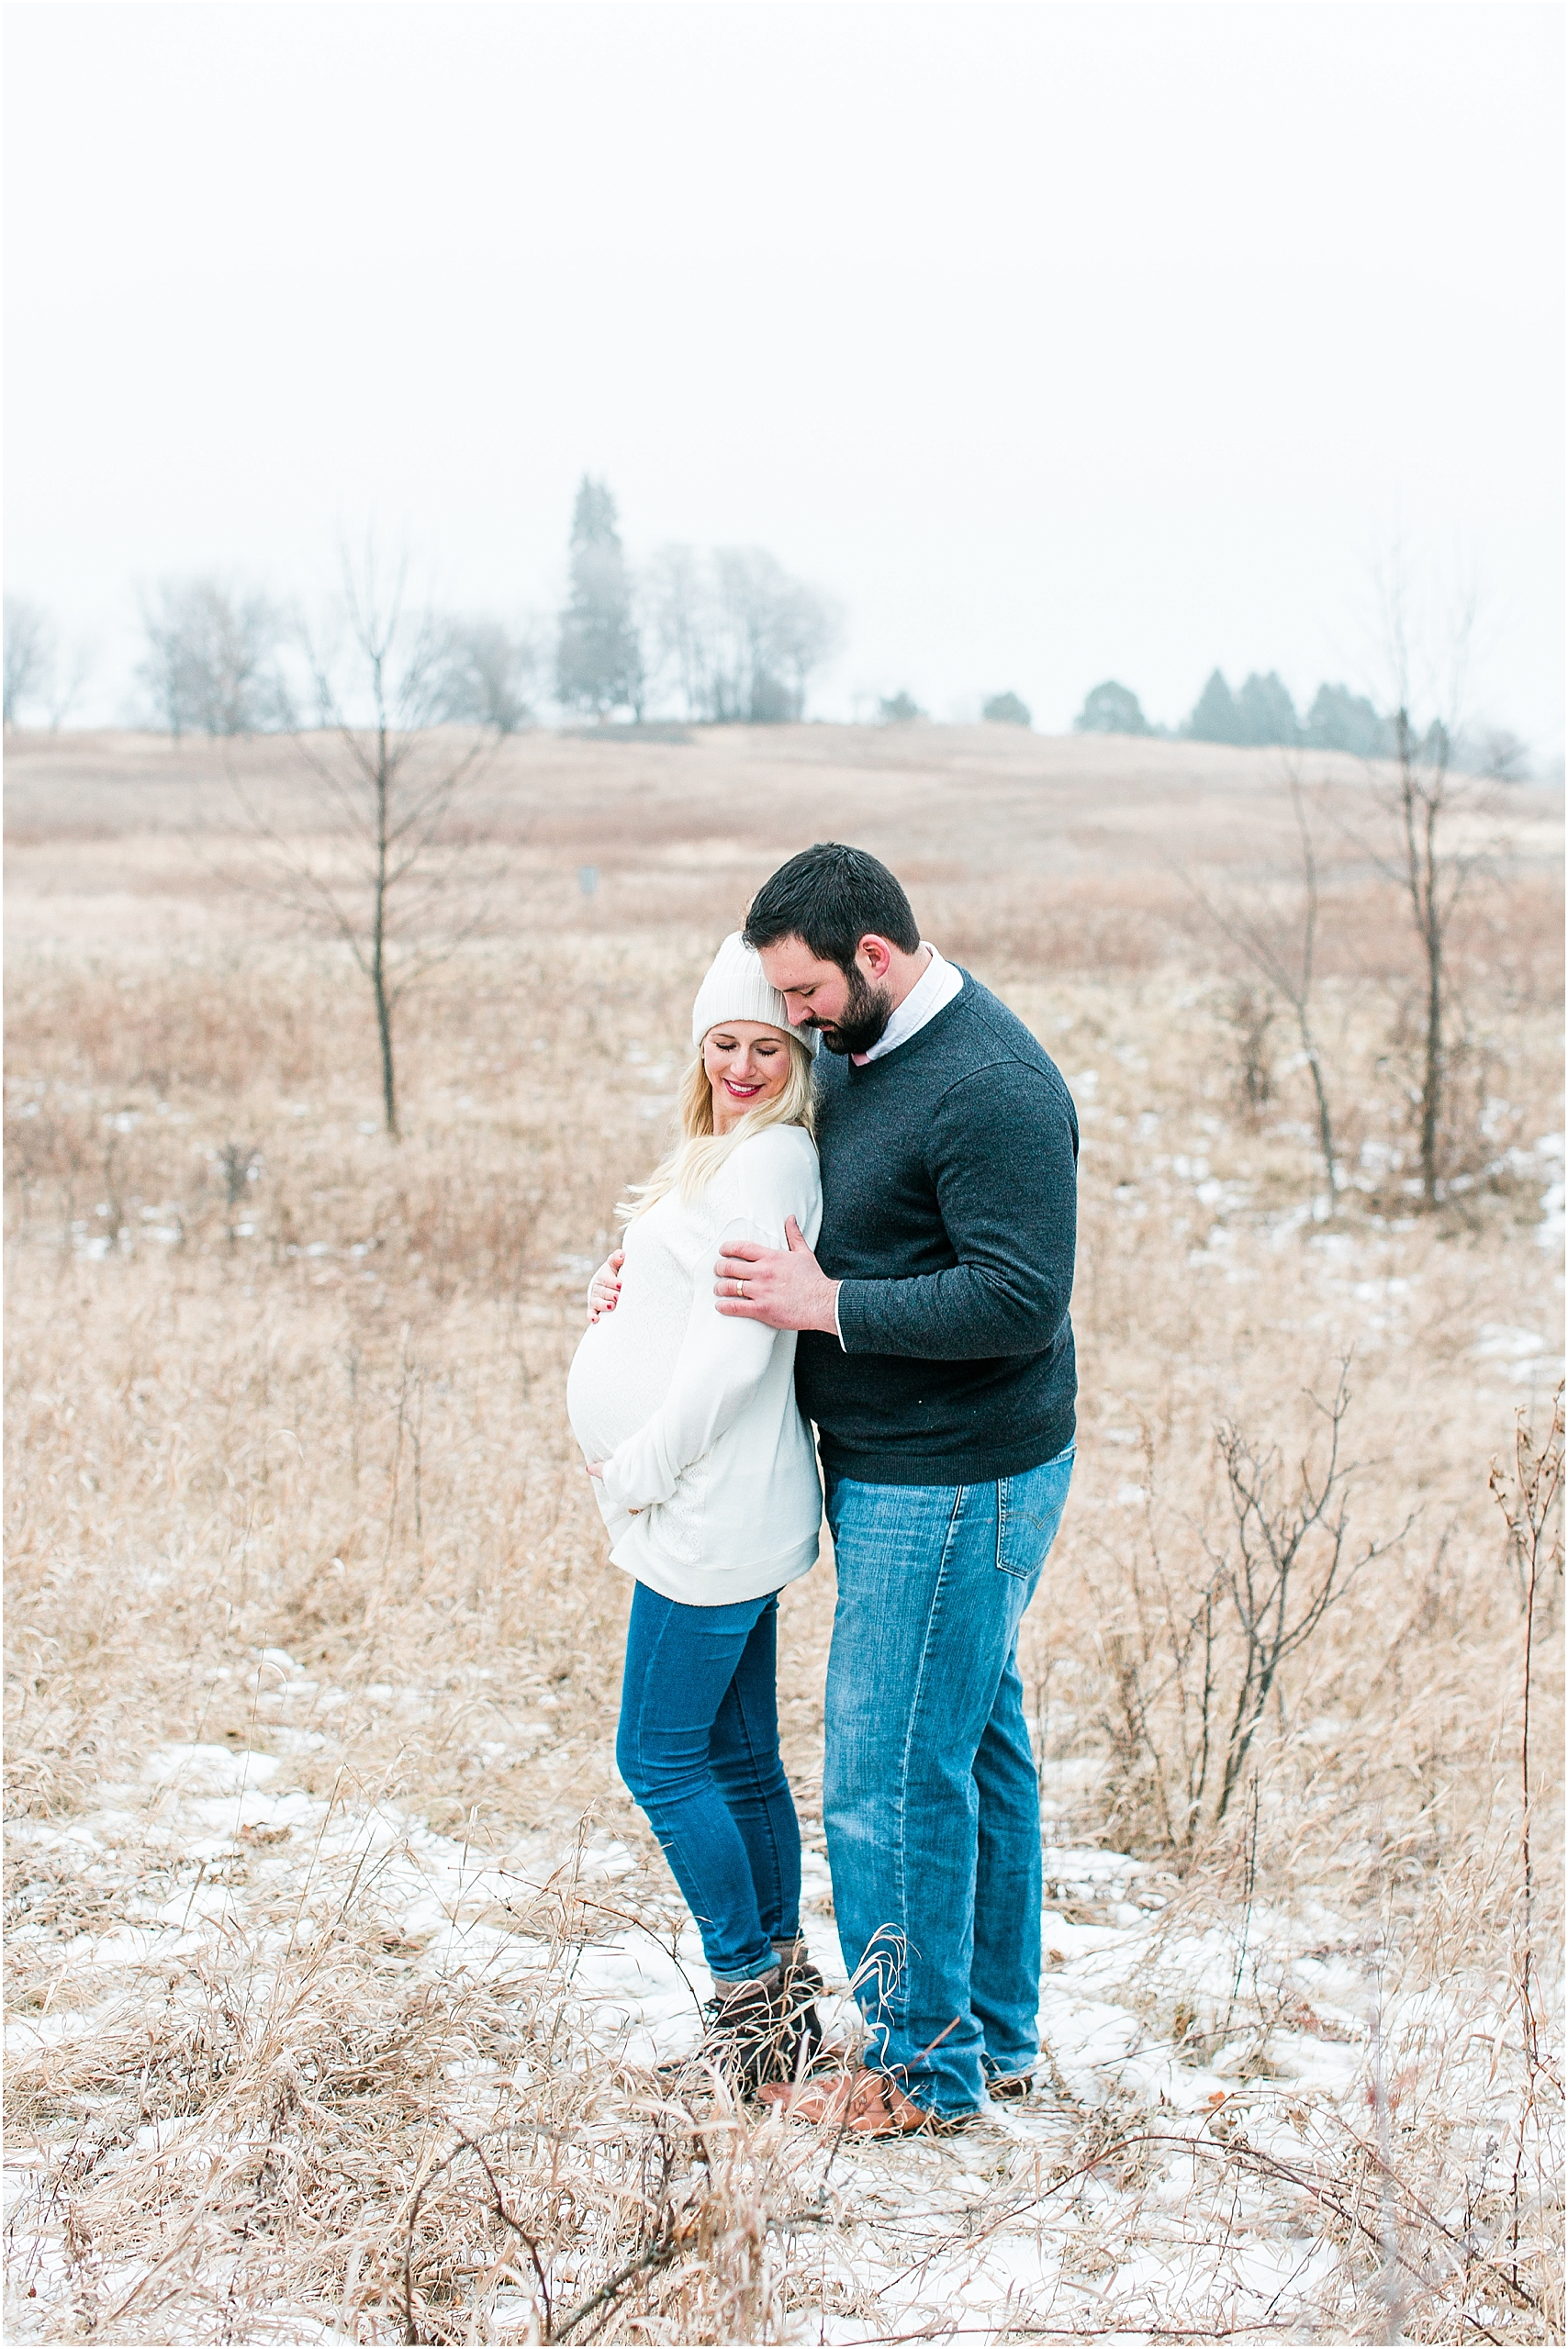 Minnesota winter maternity session Lake Ann Park Chanhassen photographed by Mallory Kiesow, Minnesota maternity photographer_010.jpg